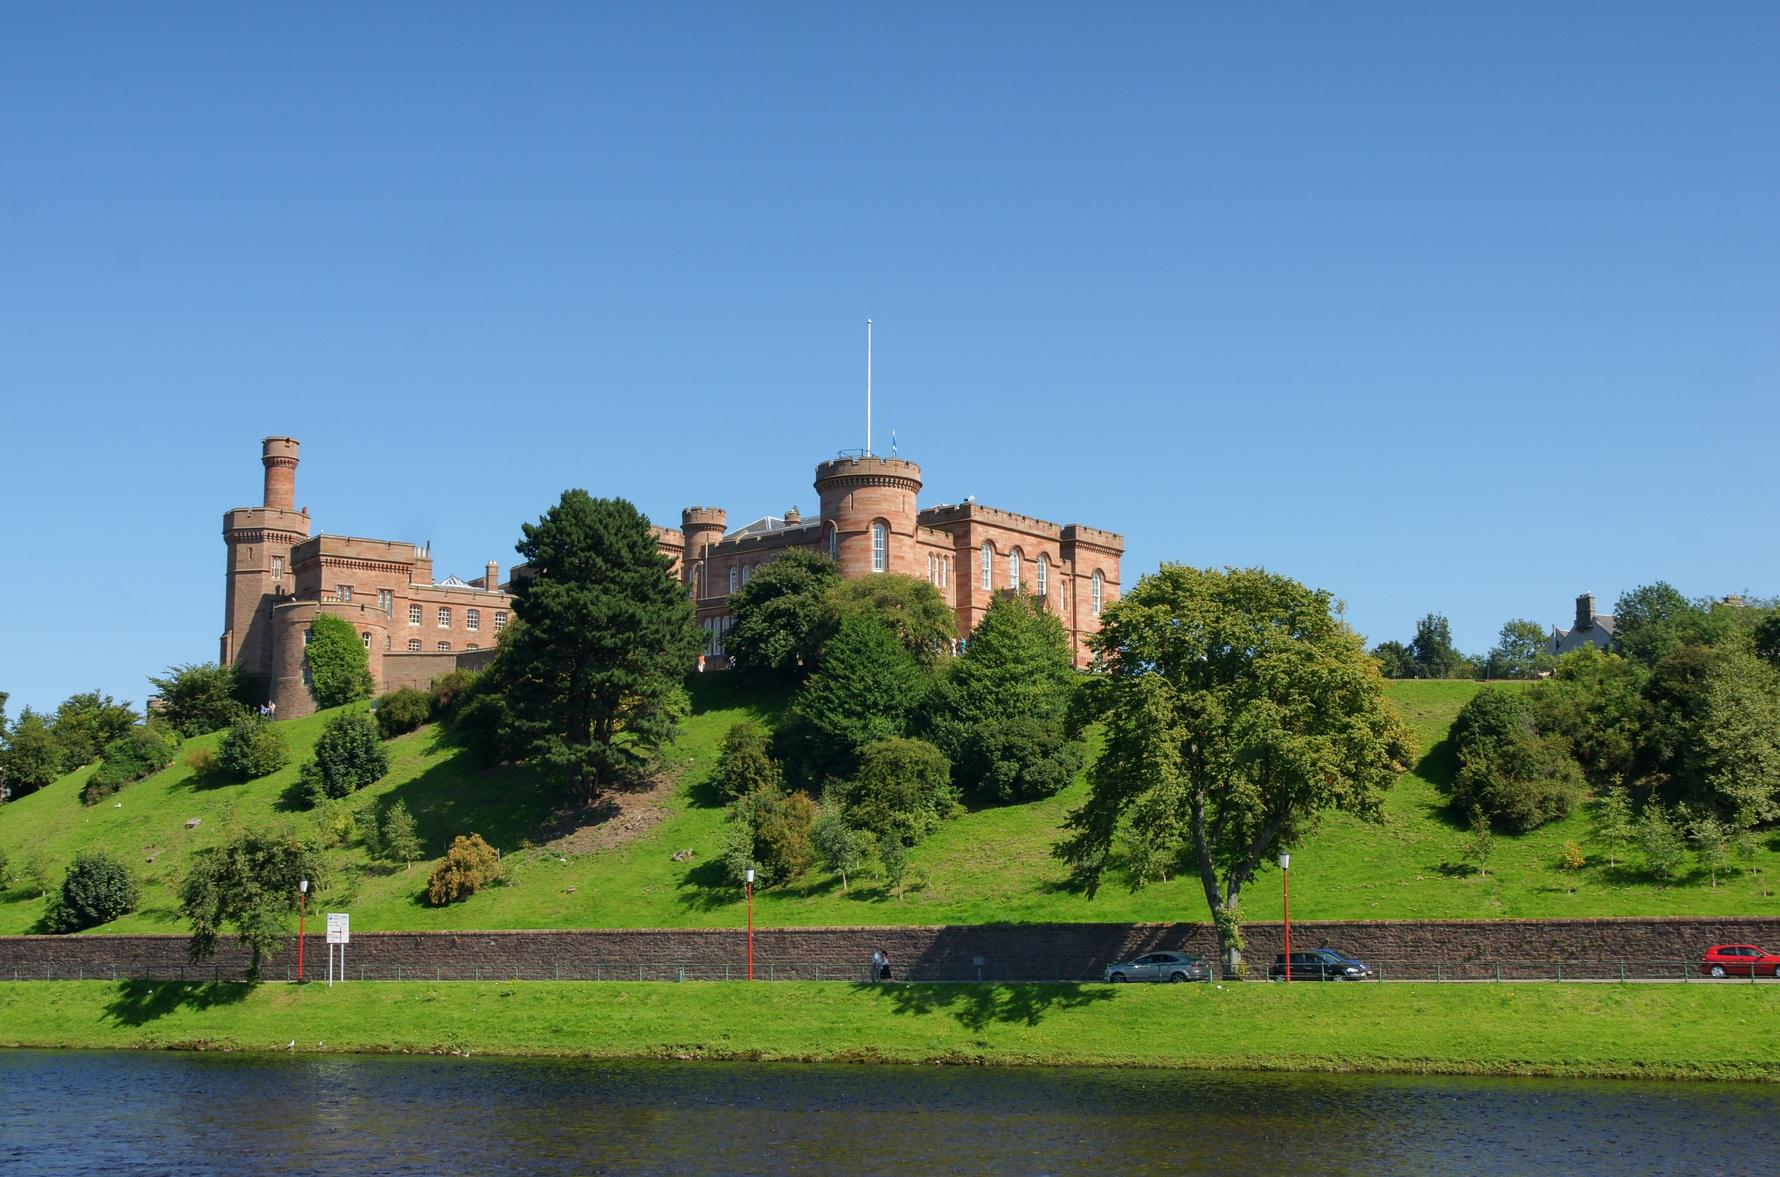 Situated in northern Scotland, Inverness is regarded as the capital of the Highlands. Although the word glamorous is not exactly synonymous with Inverness, the city is host to a whole number of events all year round that helps put it on the map. Inverness Castle is relatively new and was built in 1847 to replace a medieval castle destroyed by the Jacobites. The previous building was the location where ...